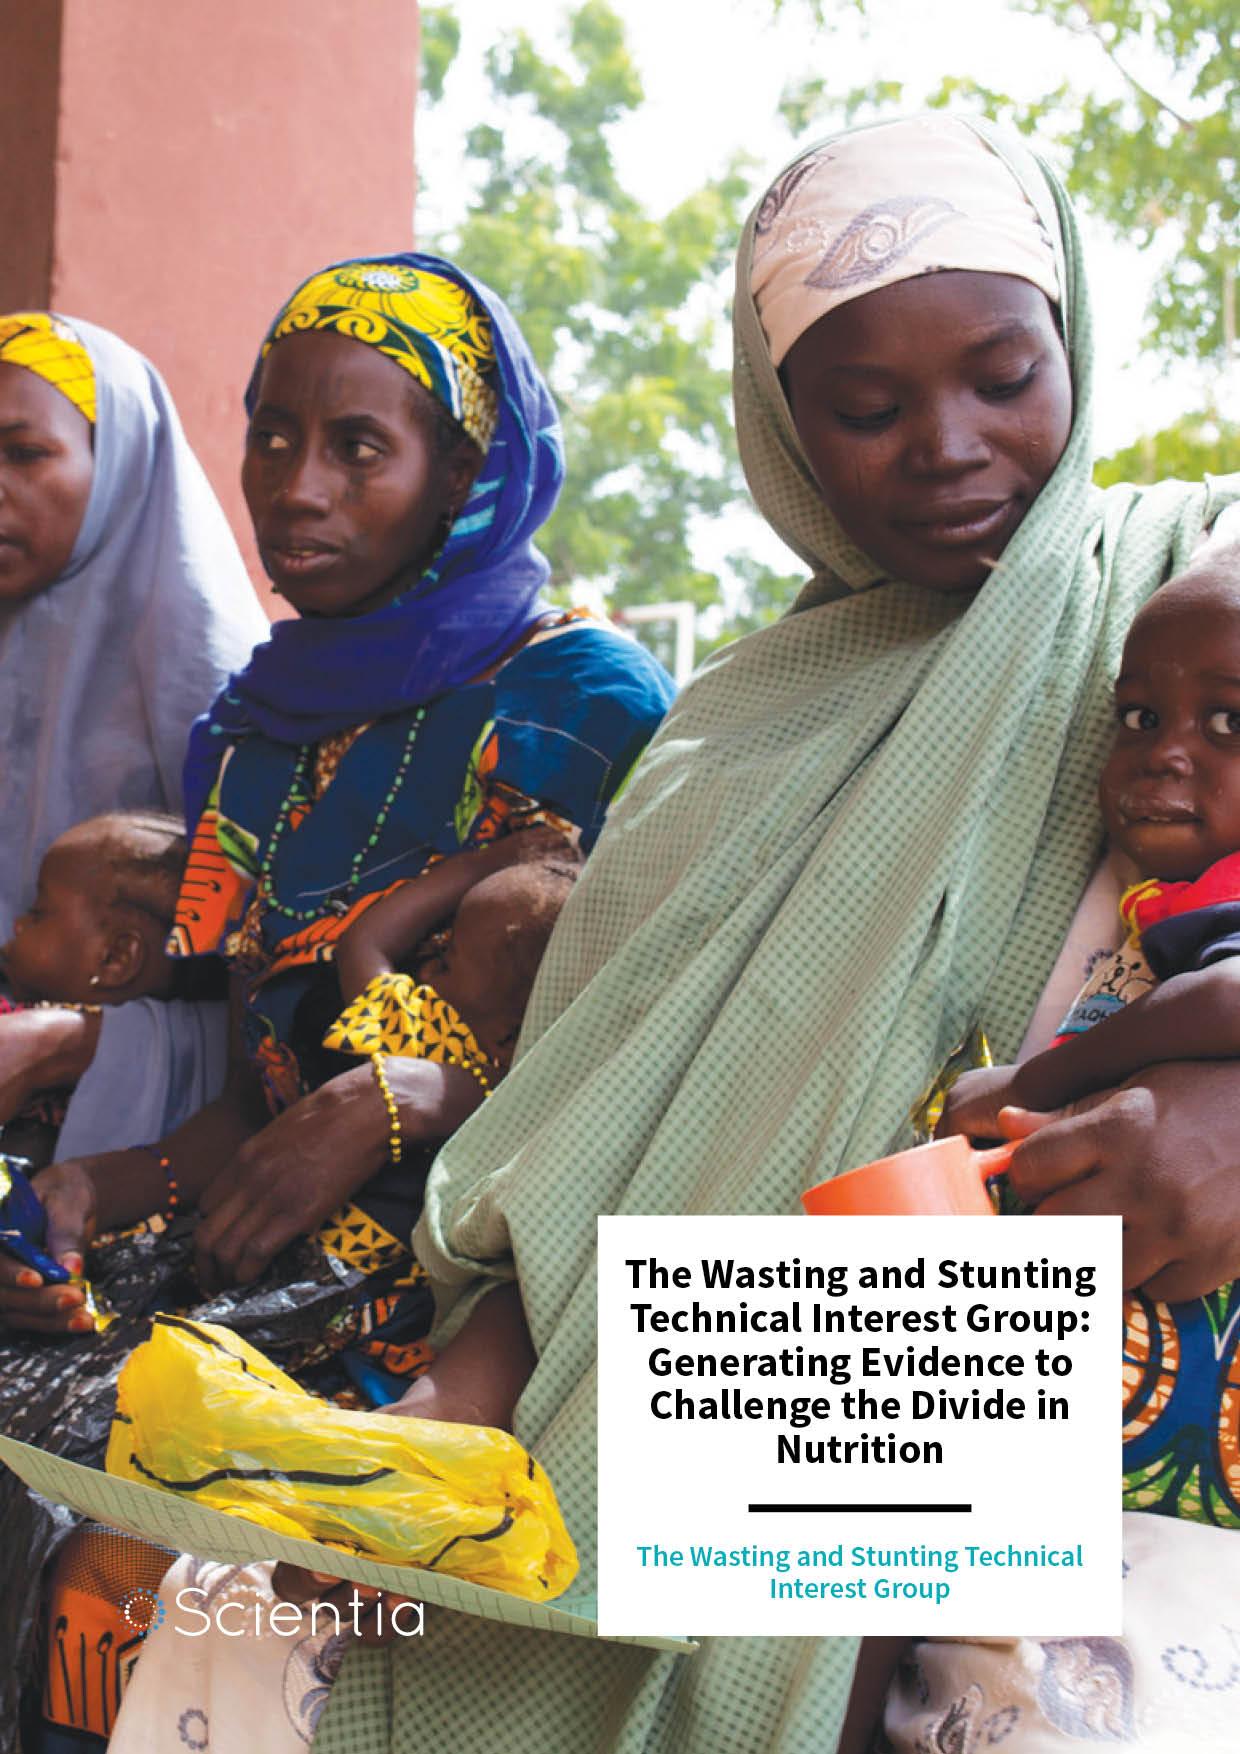 The Wasting and Stunting Technical Interest Group: Generating Evidence to Challenge the Divide in Nutrition